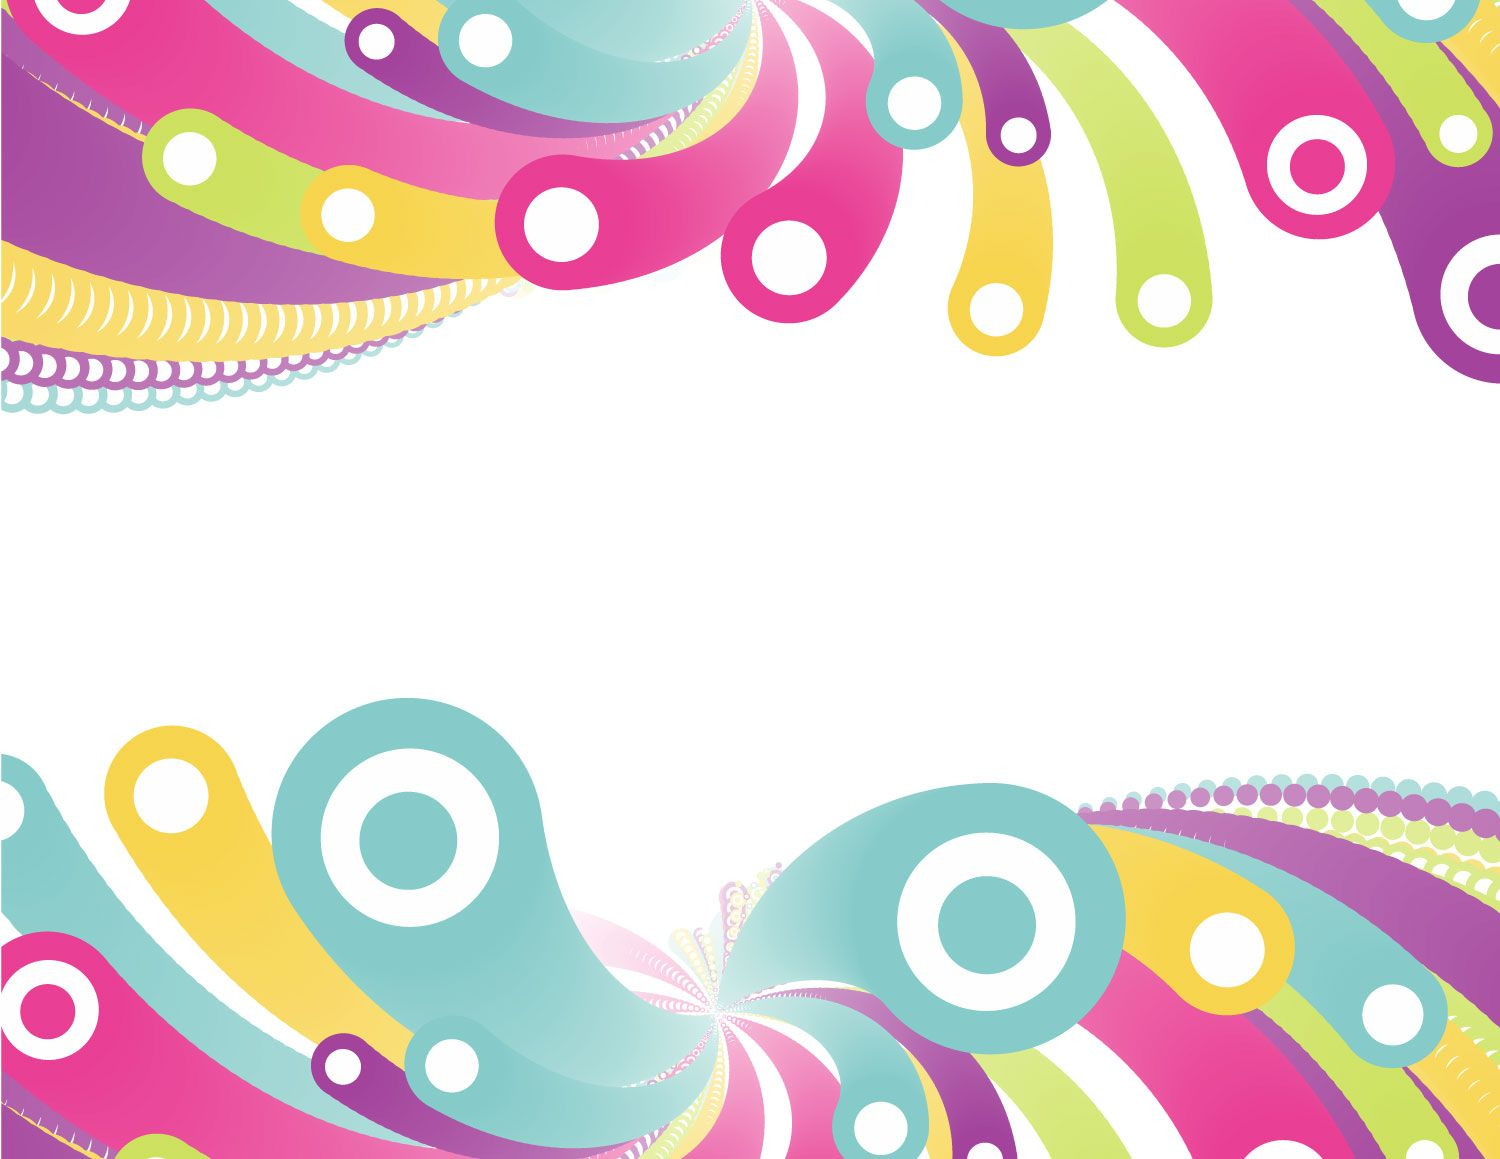 colorful backgrounds - Google Search | Name tag templates ...